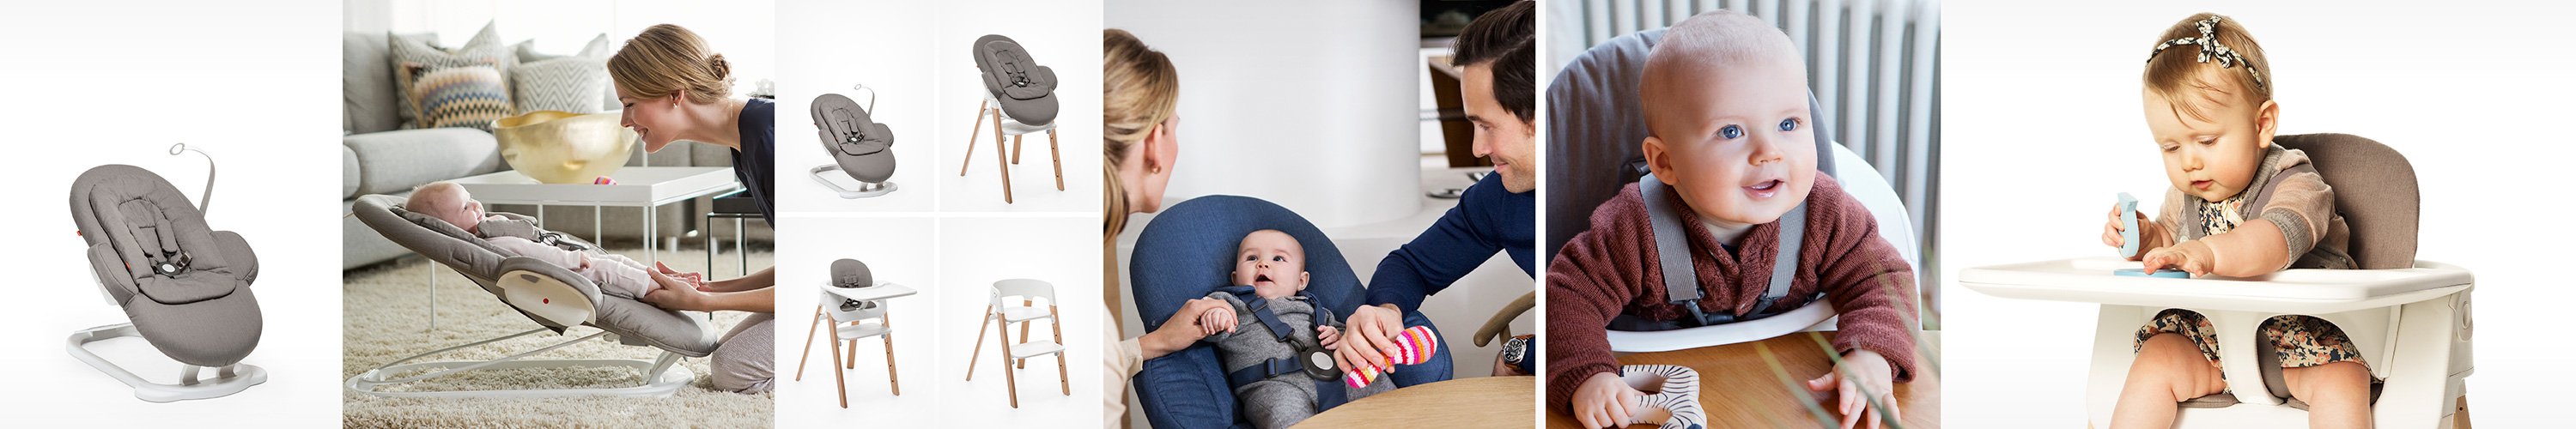 High Chairs Seating Amp Bouncers For Babies From Stokke 174